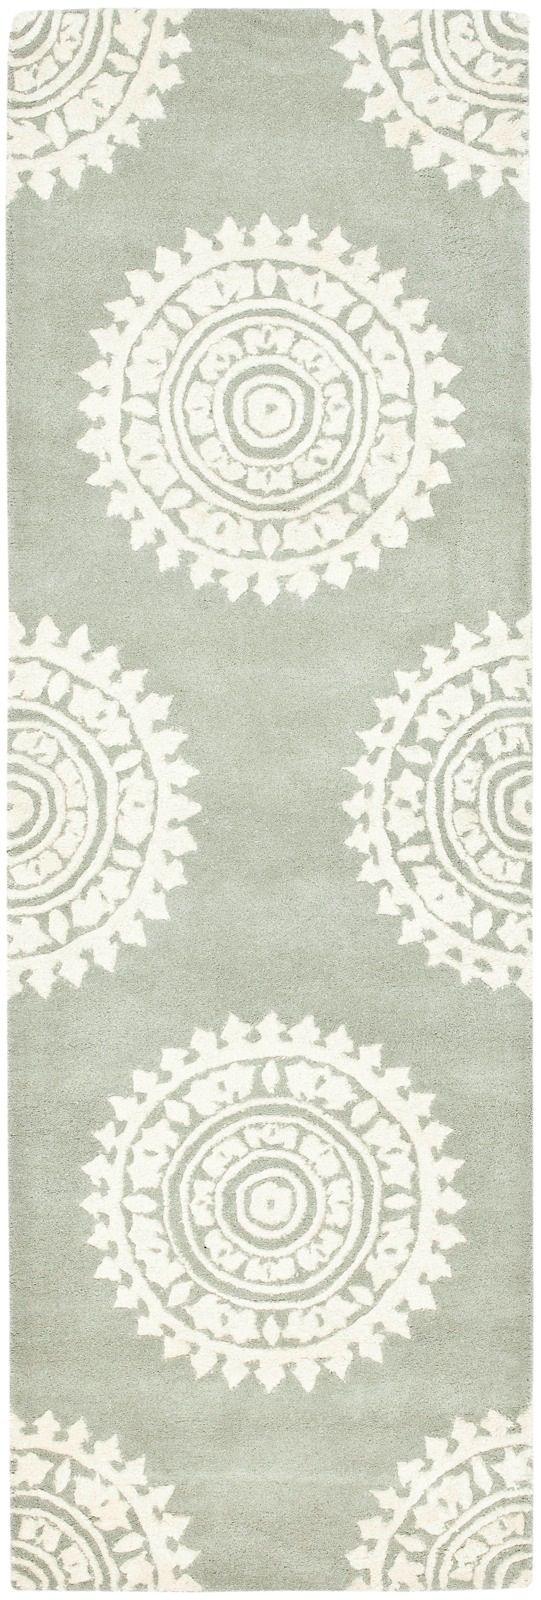 safavieh soho contemporary area rug collection